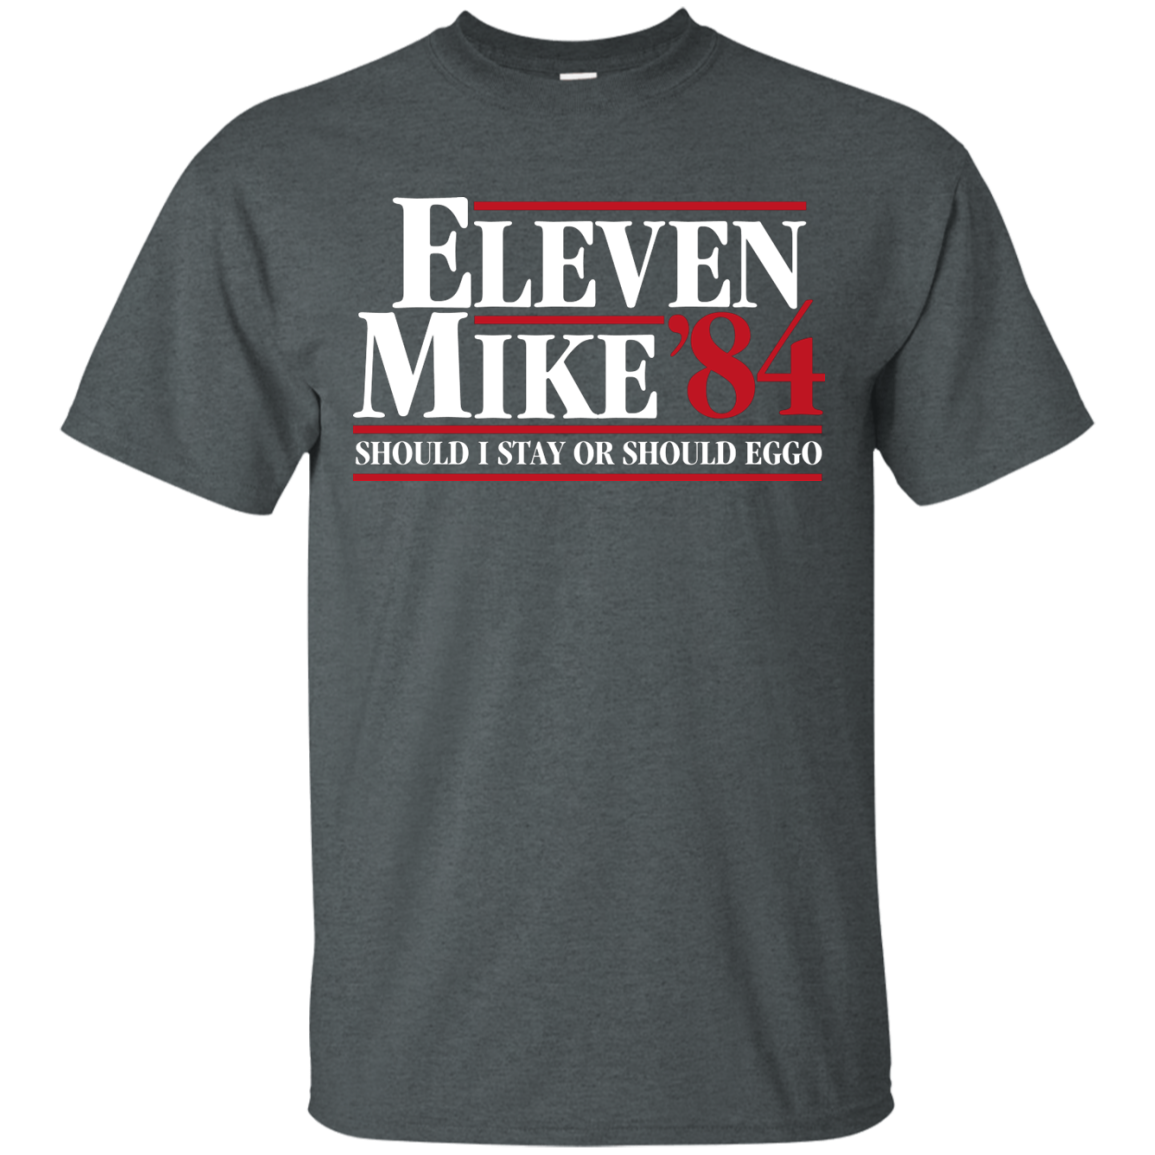 Eleven Mike 84 - Should I Stay or Should Eggo T-Shirt